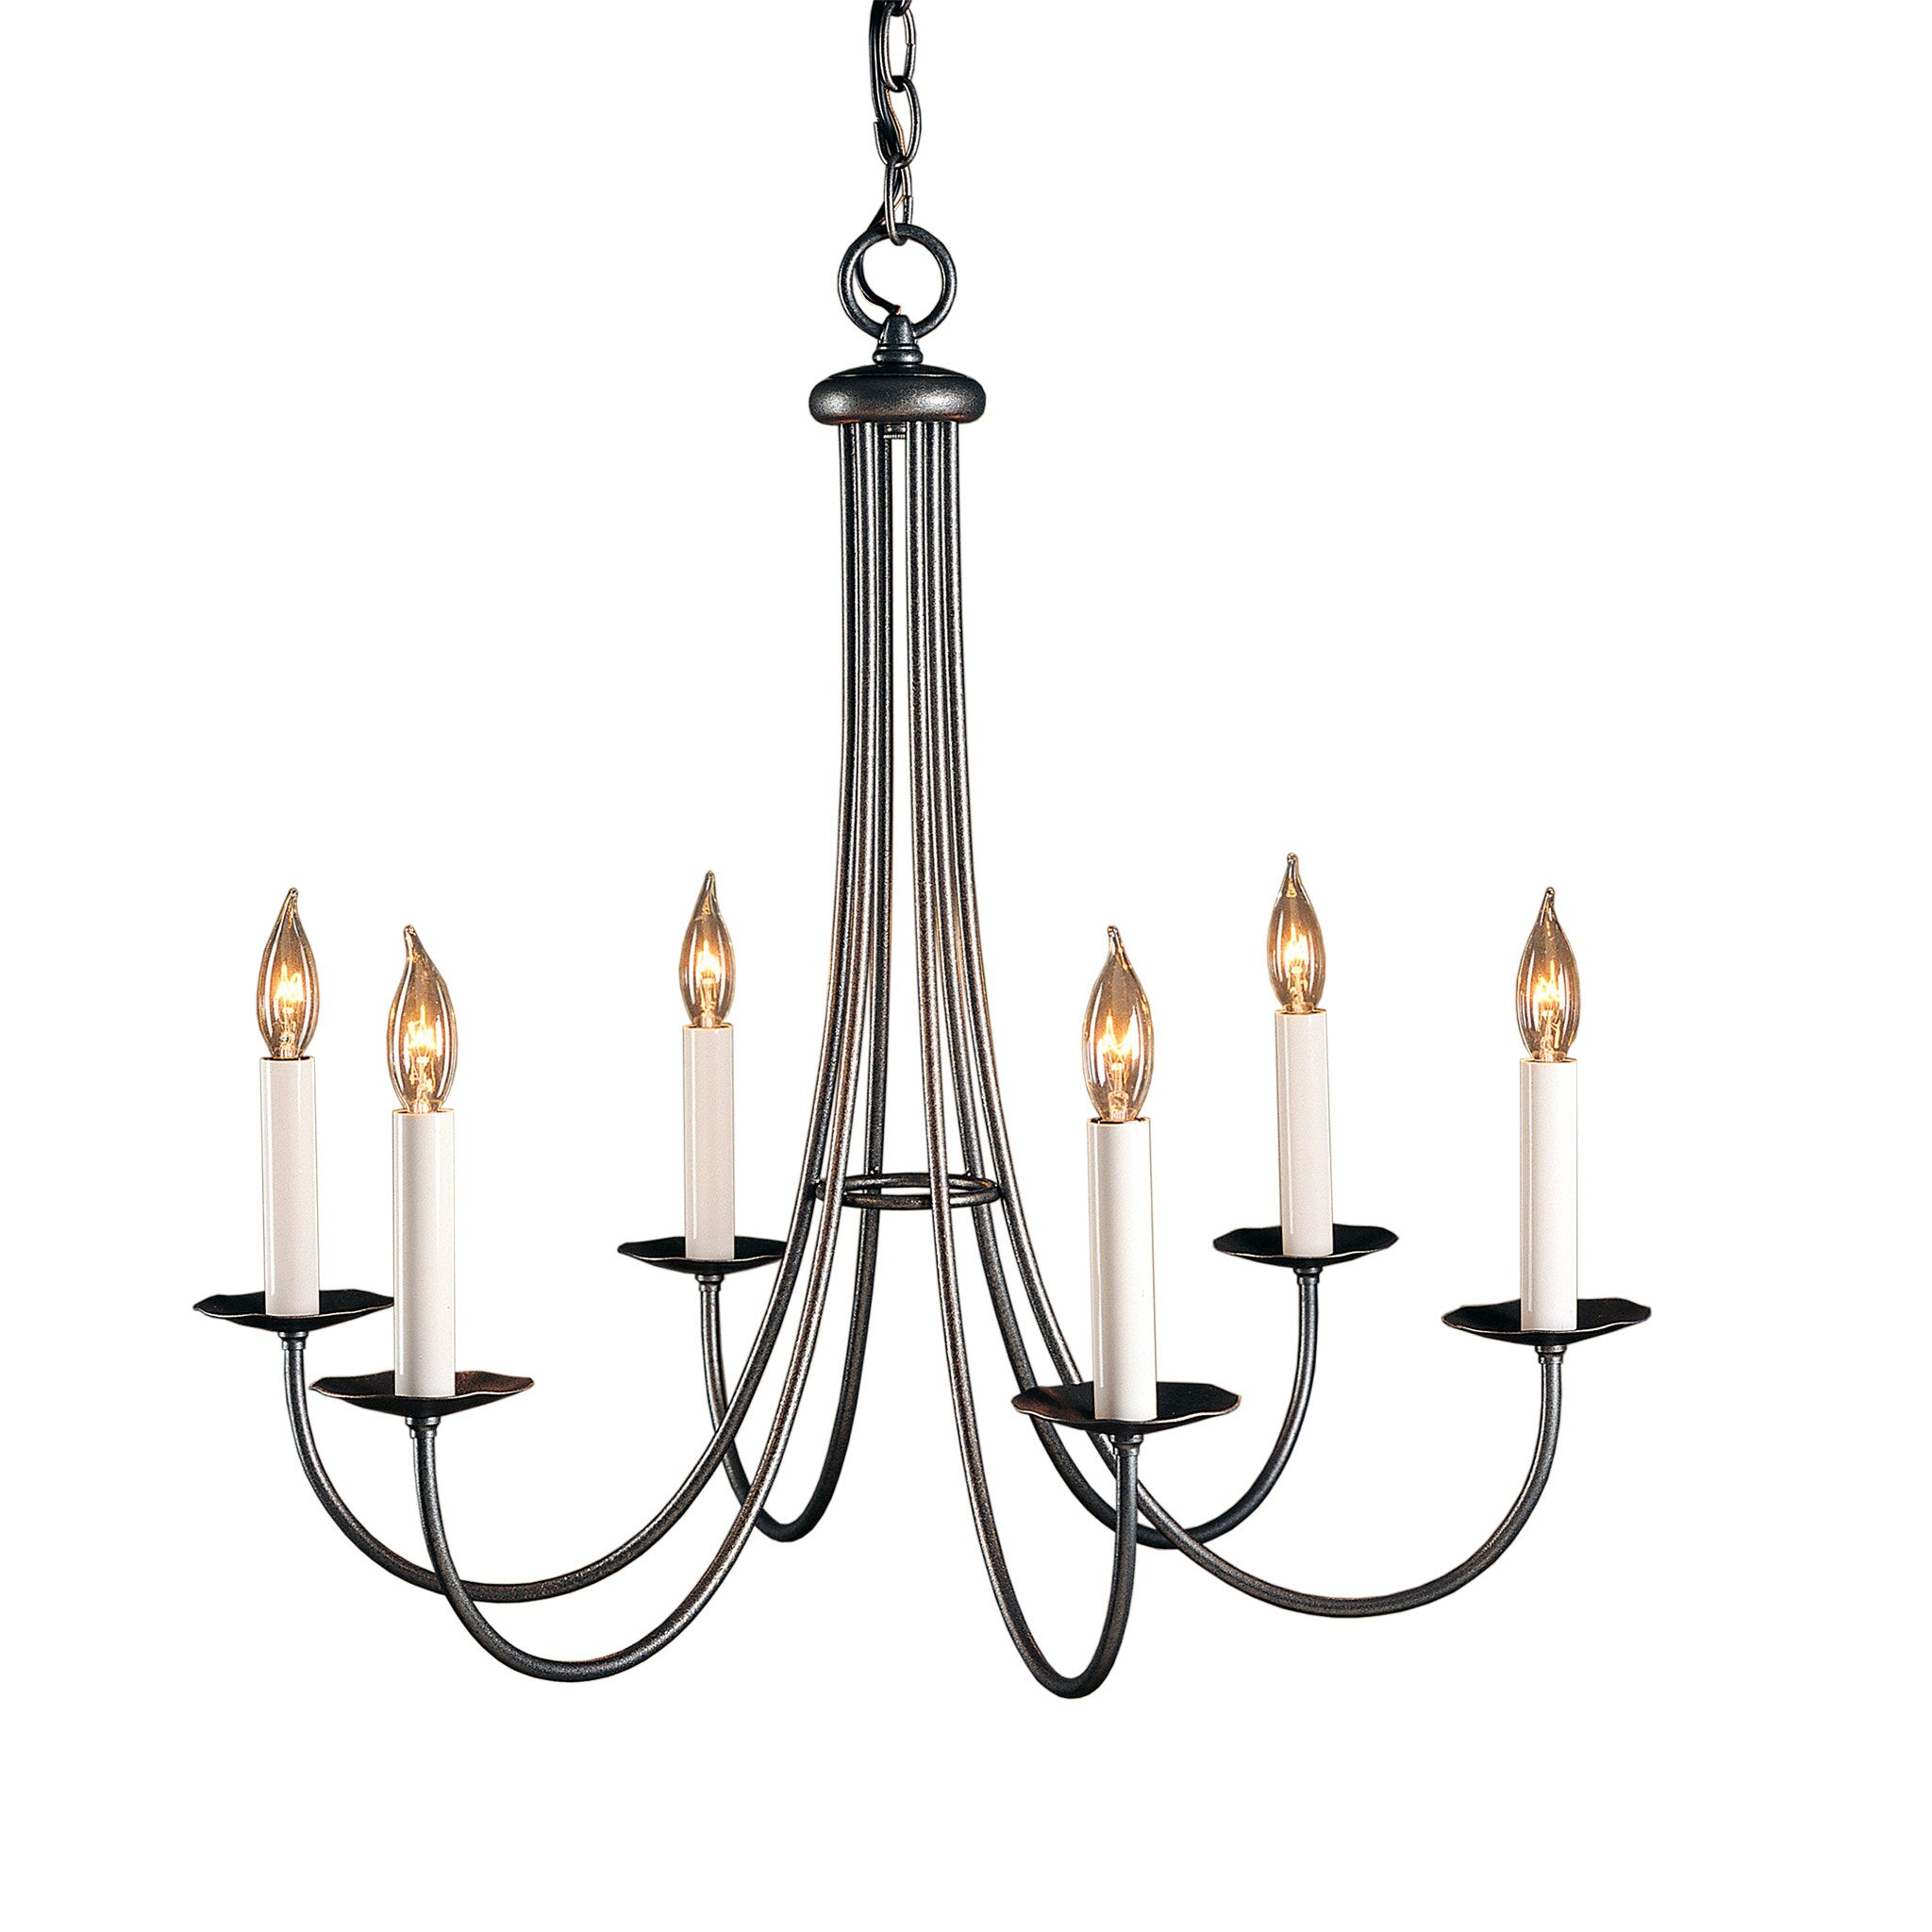 Simple Sweep 6-Light Chandelier Finish: Natural lron